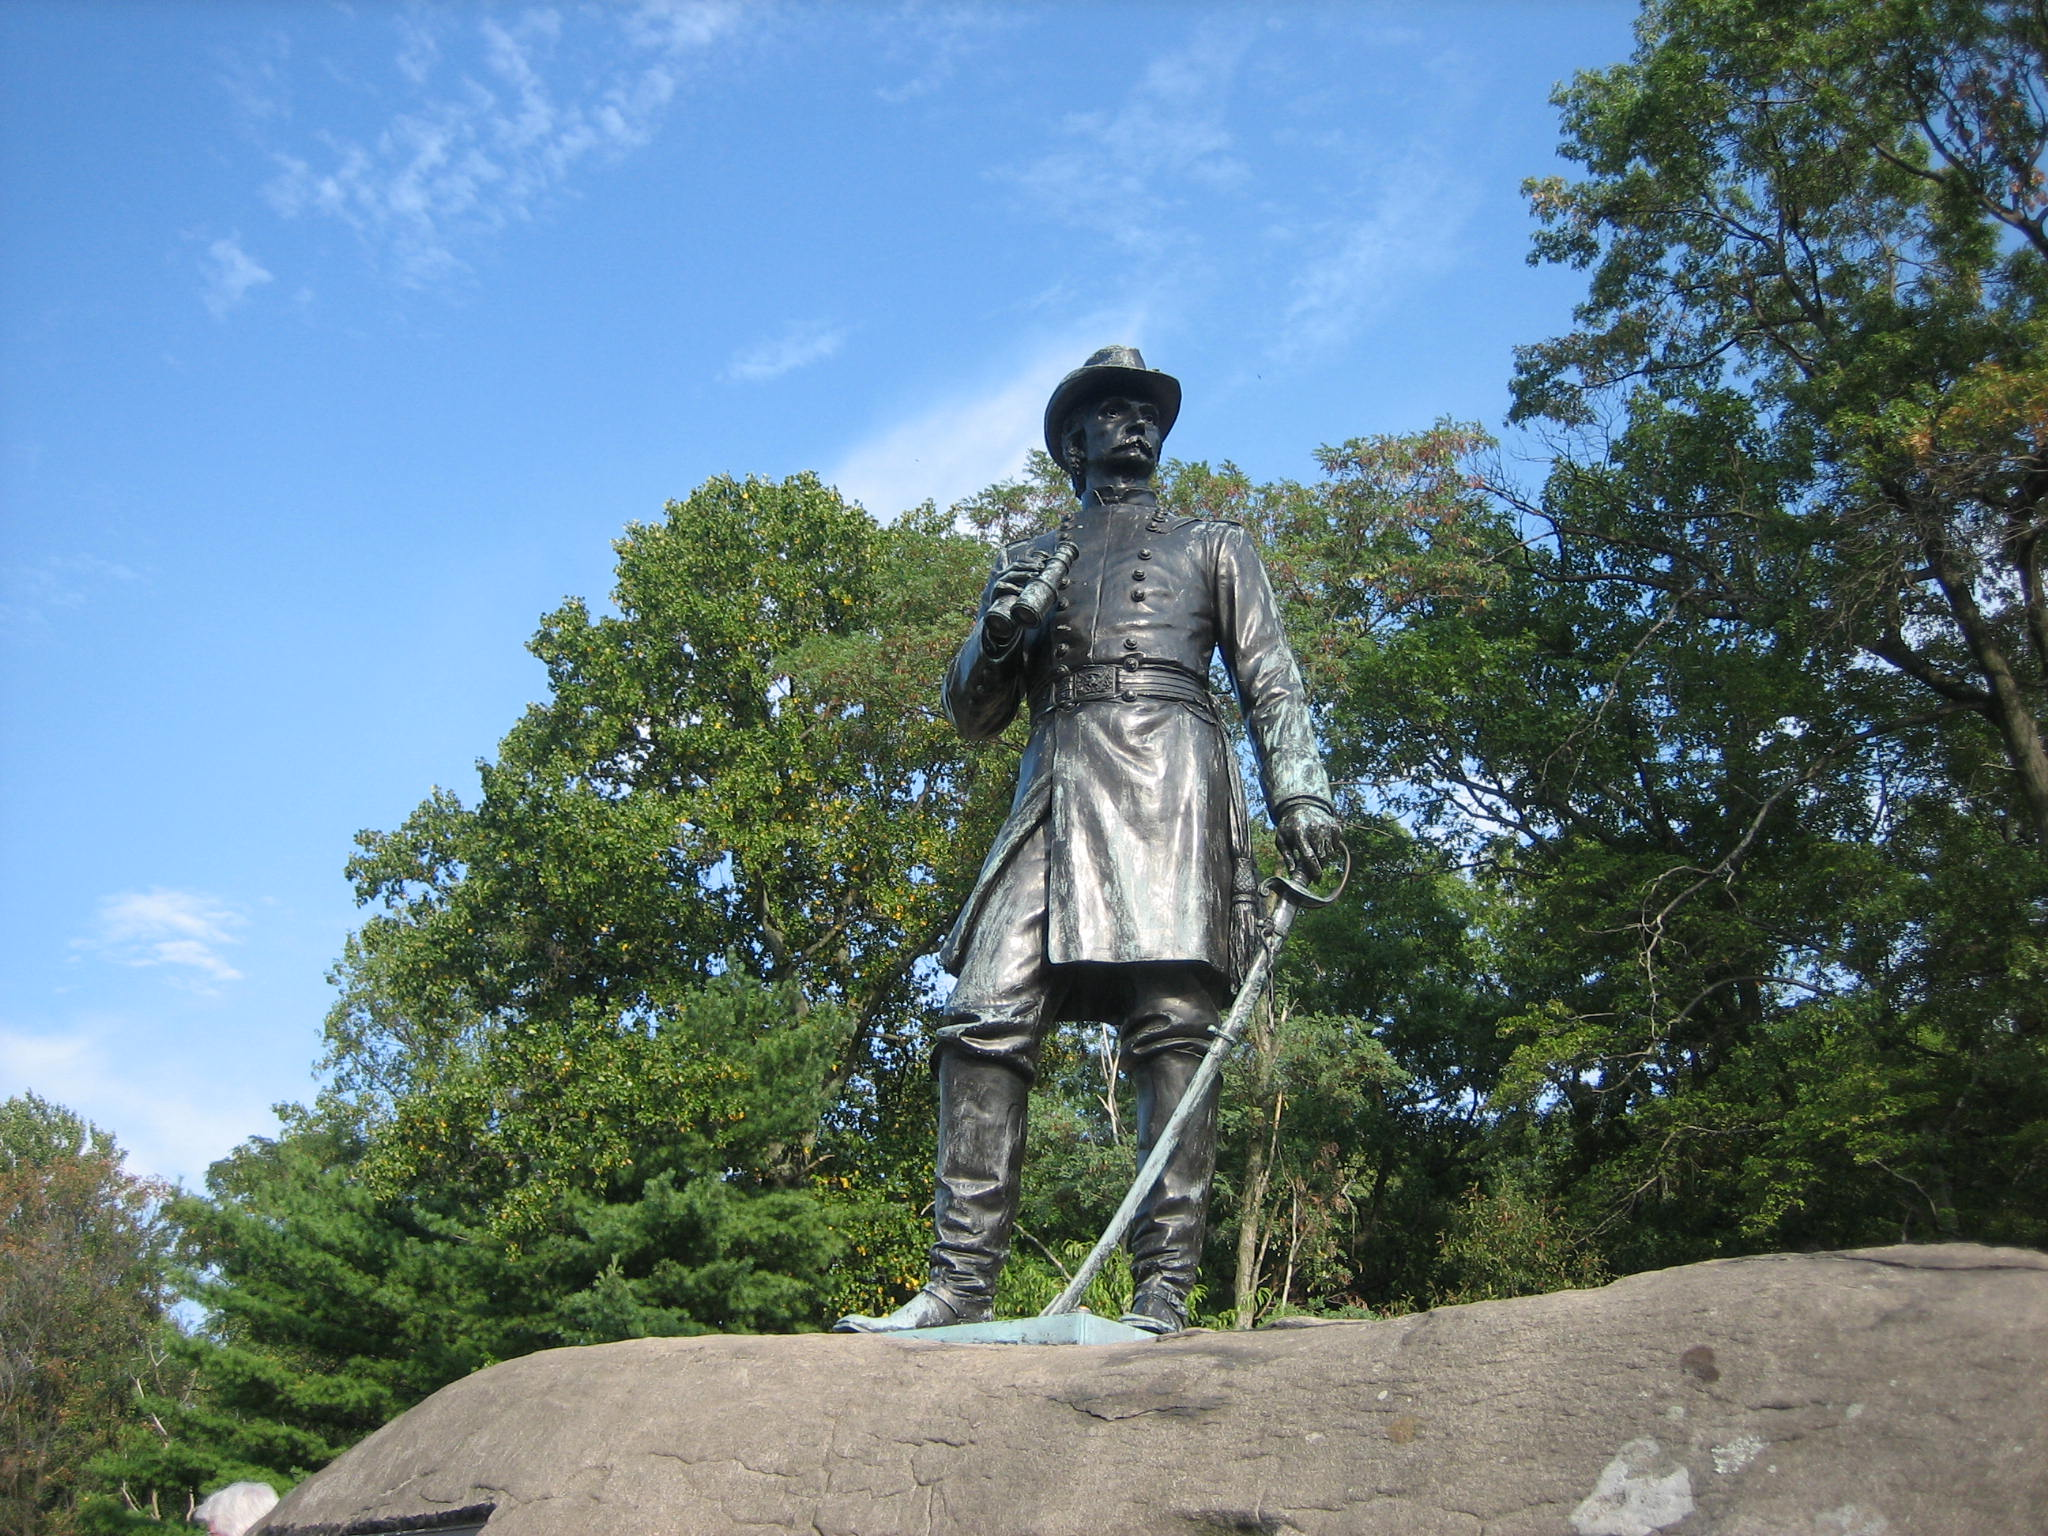 Warren Statue It S Not Easy Turning Green Gettysburg Daily Son of geese howard, raised by terry bogard after he had killed geese. gettysburg daily